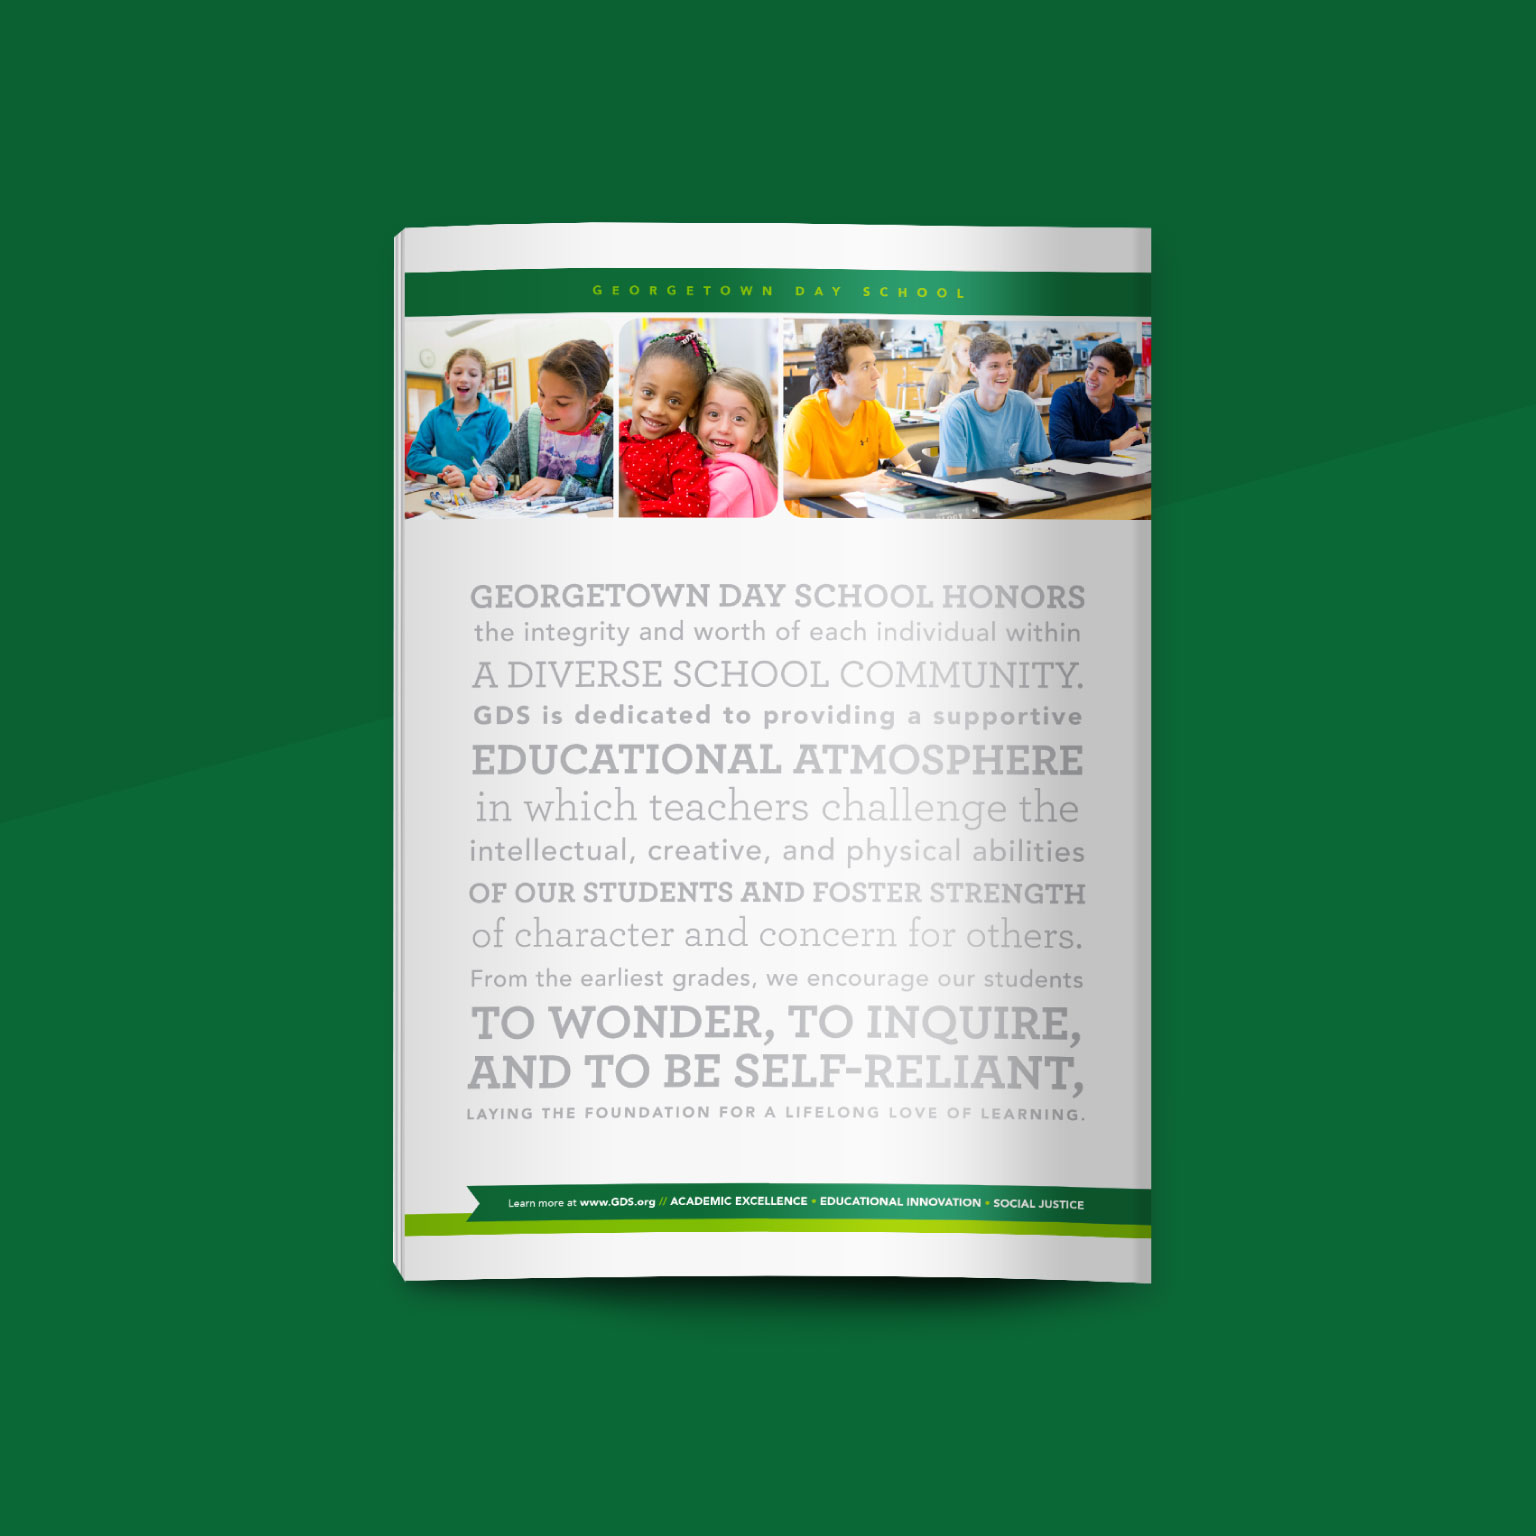 magazine ad for Georgetown Day School showing children in classrooms and the school's mission statement